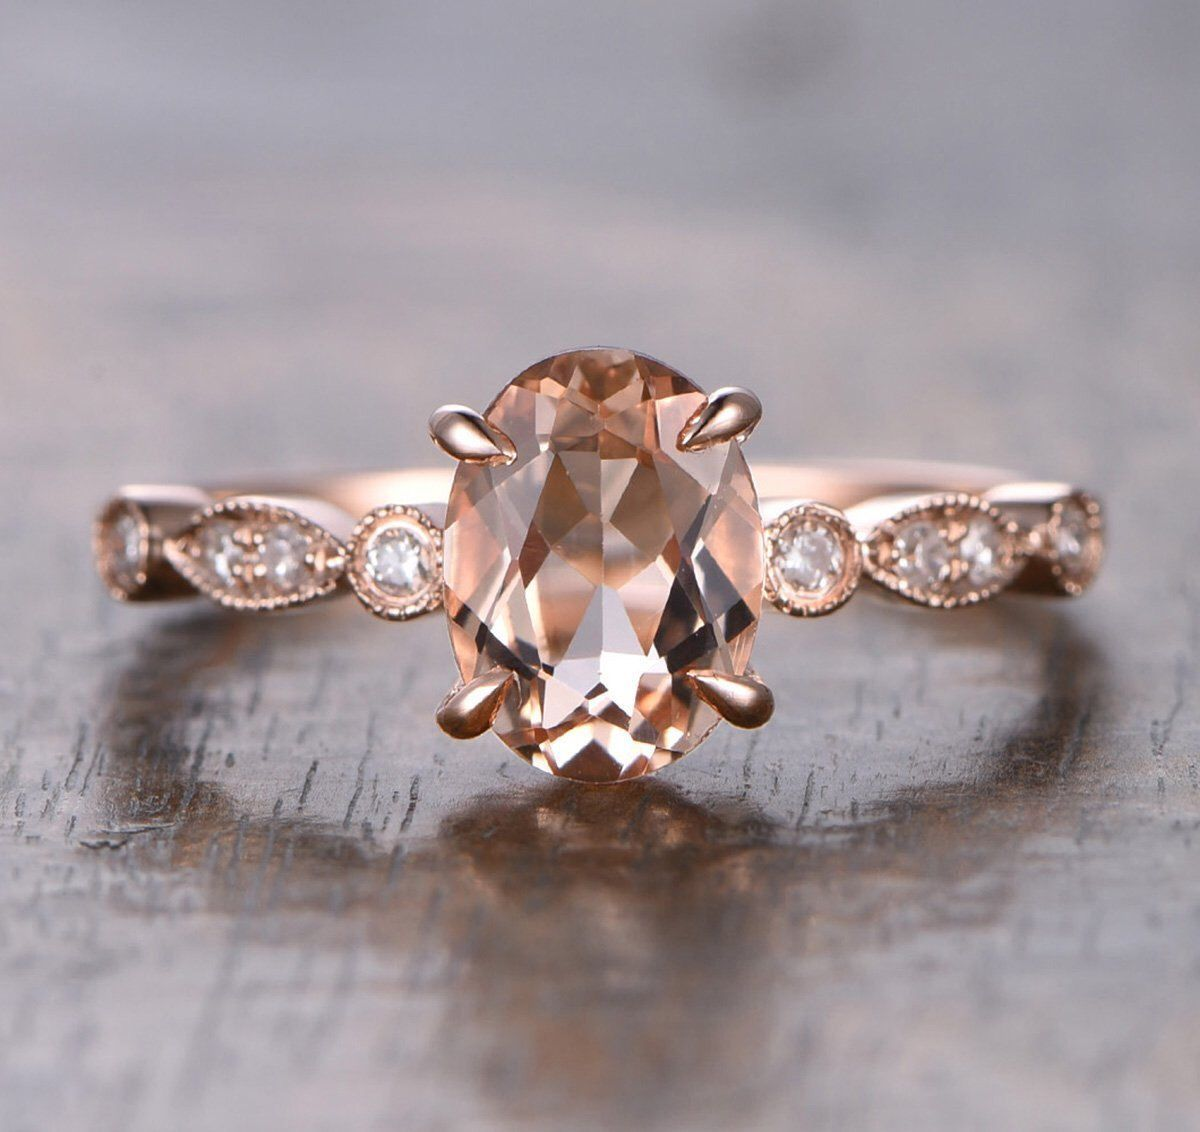 Limited Time 1 25 Carat Morganite And Diamond Engagement Ring In 10k Rose Gold For Women Under 300 By Jeenmata On Etsy